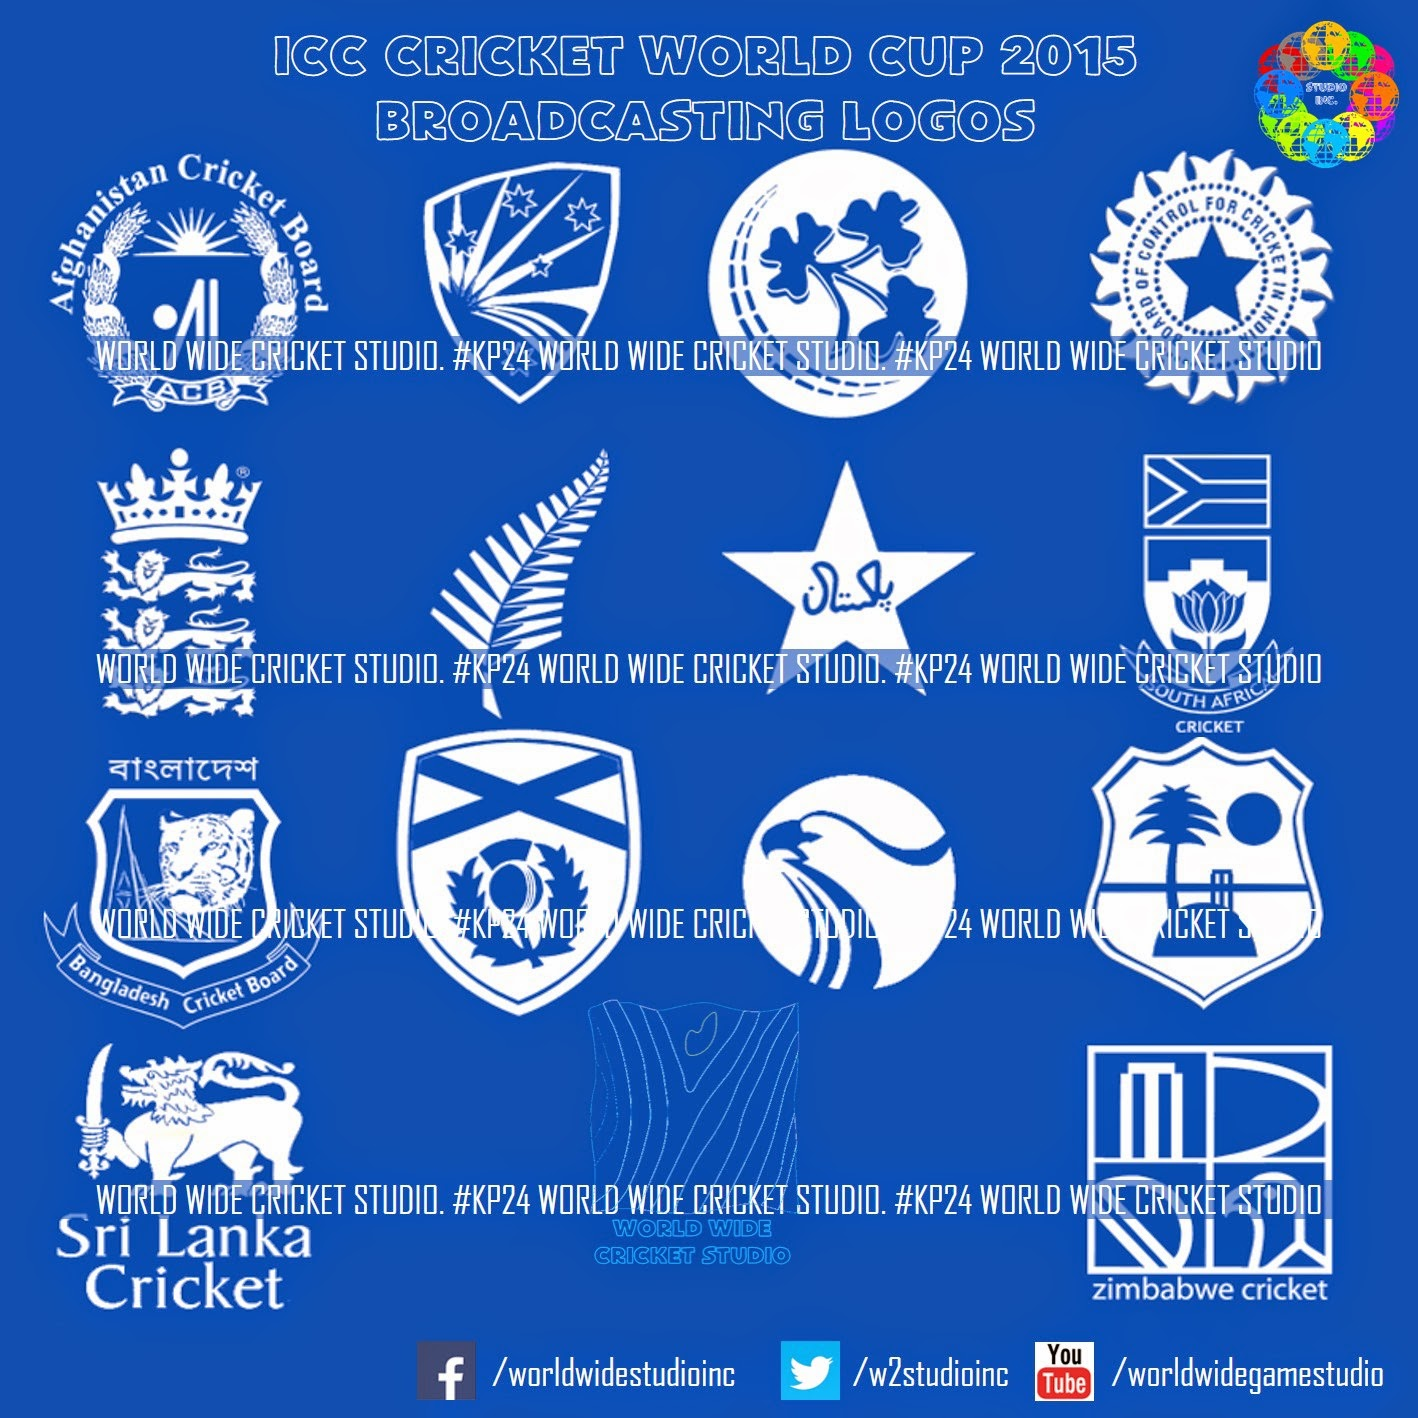 cricket world cup fixtures 2015 pdf